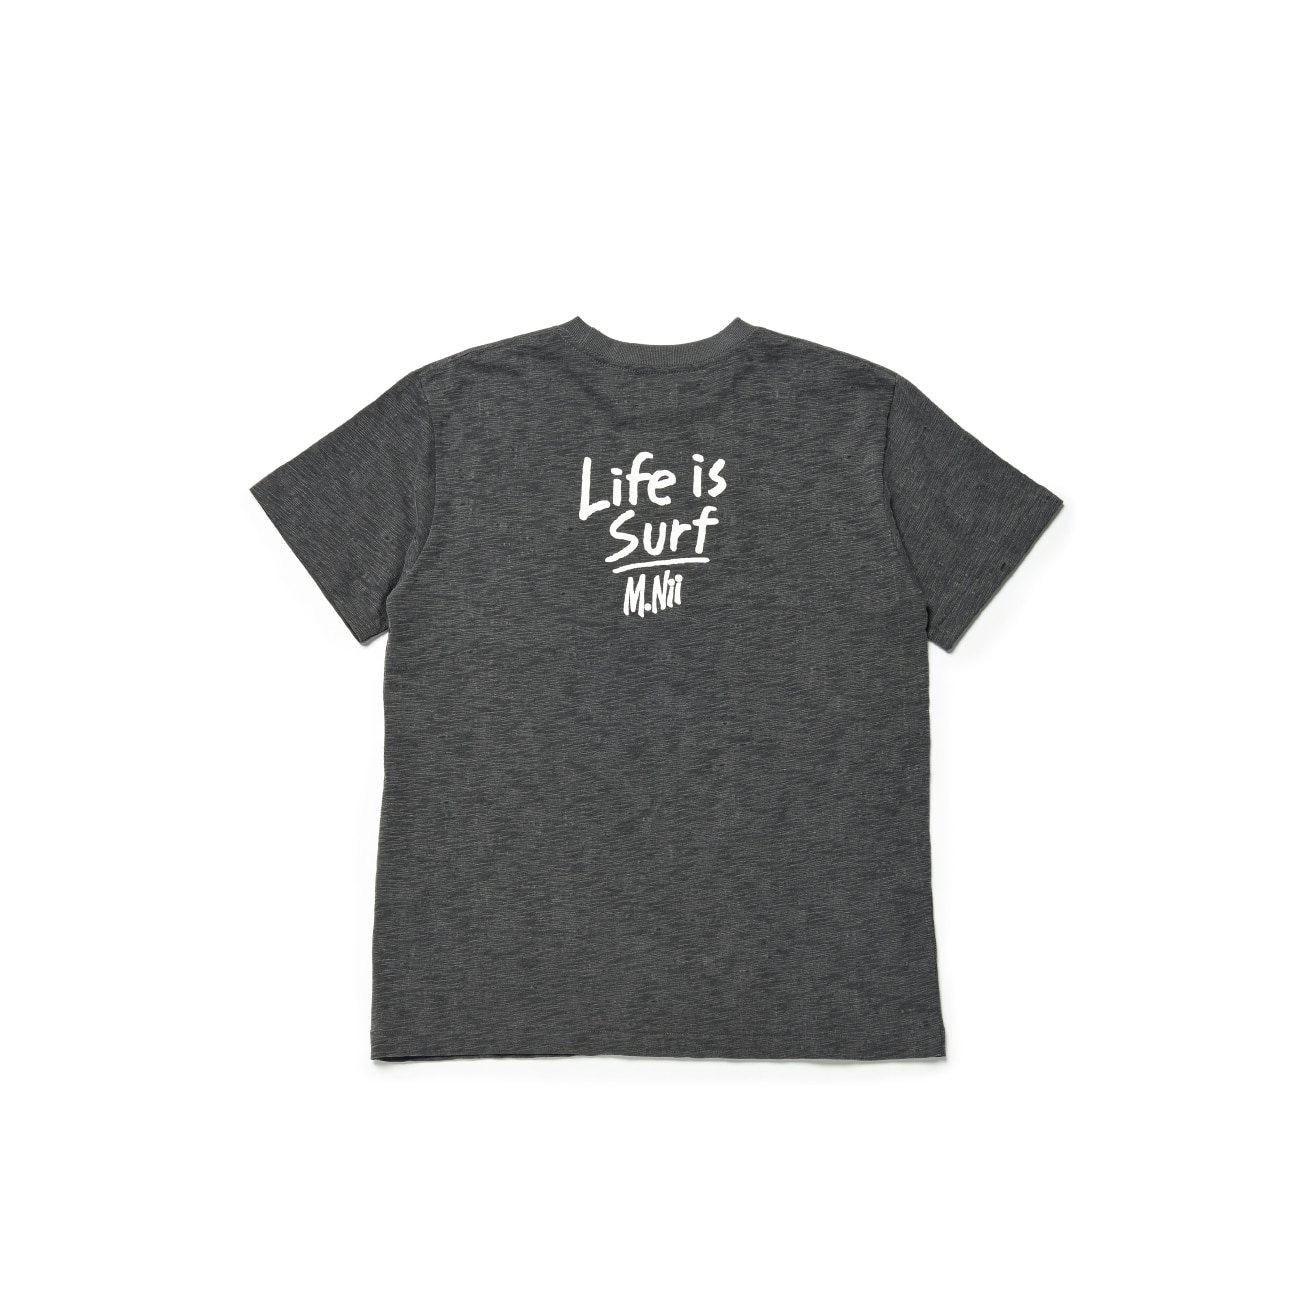 Life is Surf T-Shirt